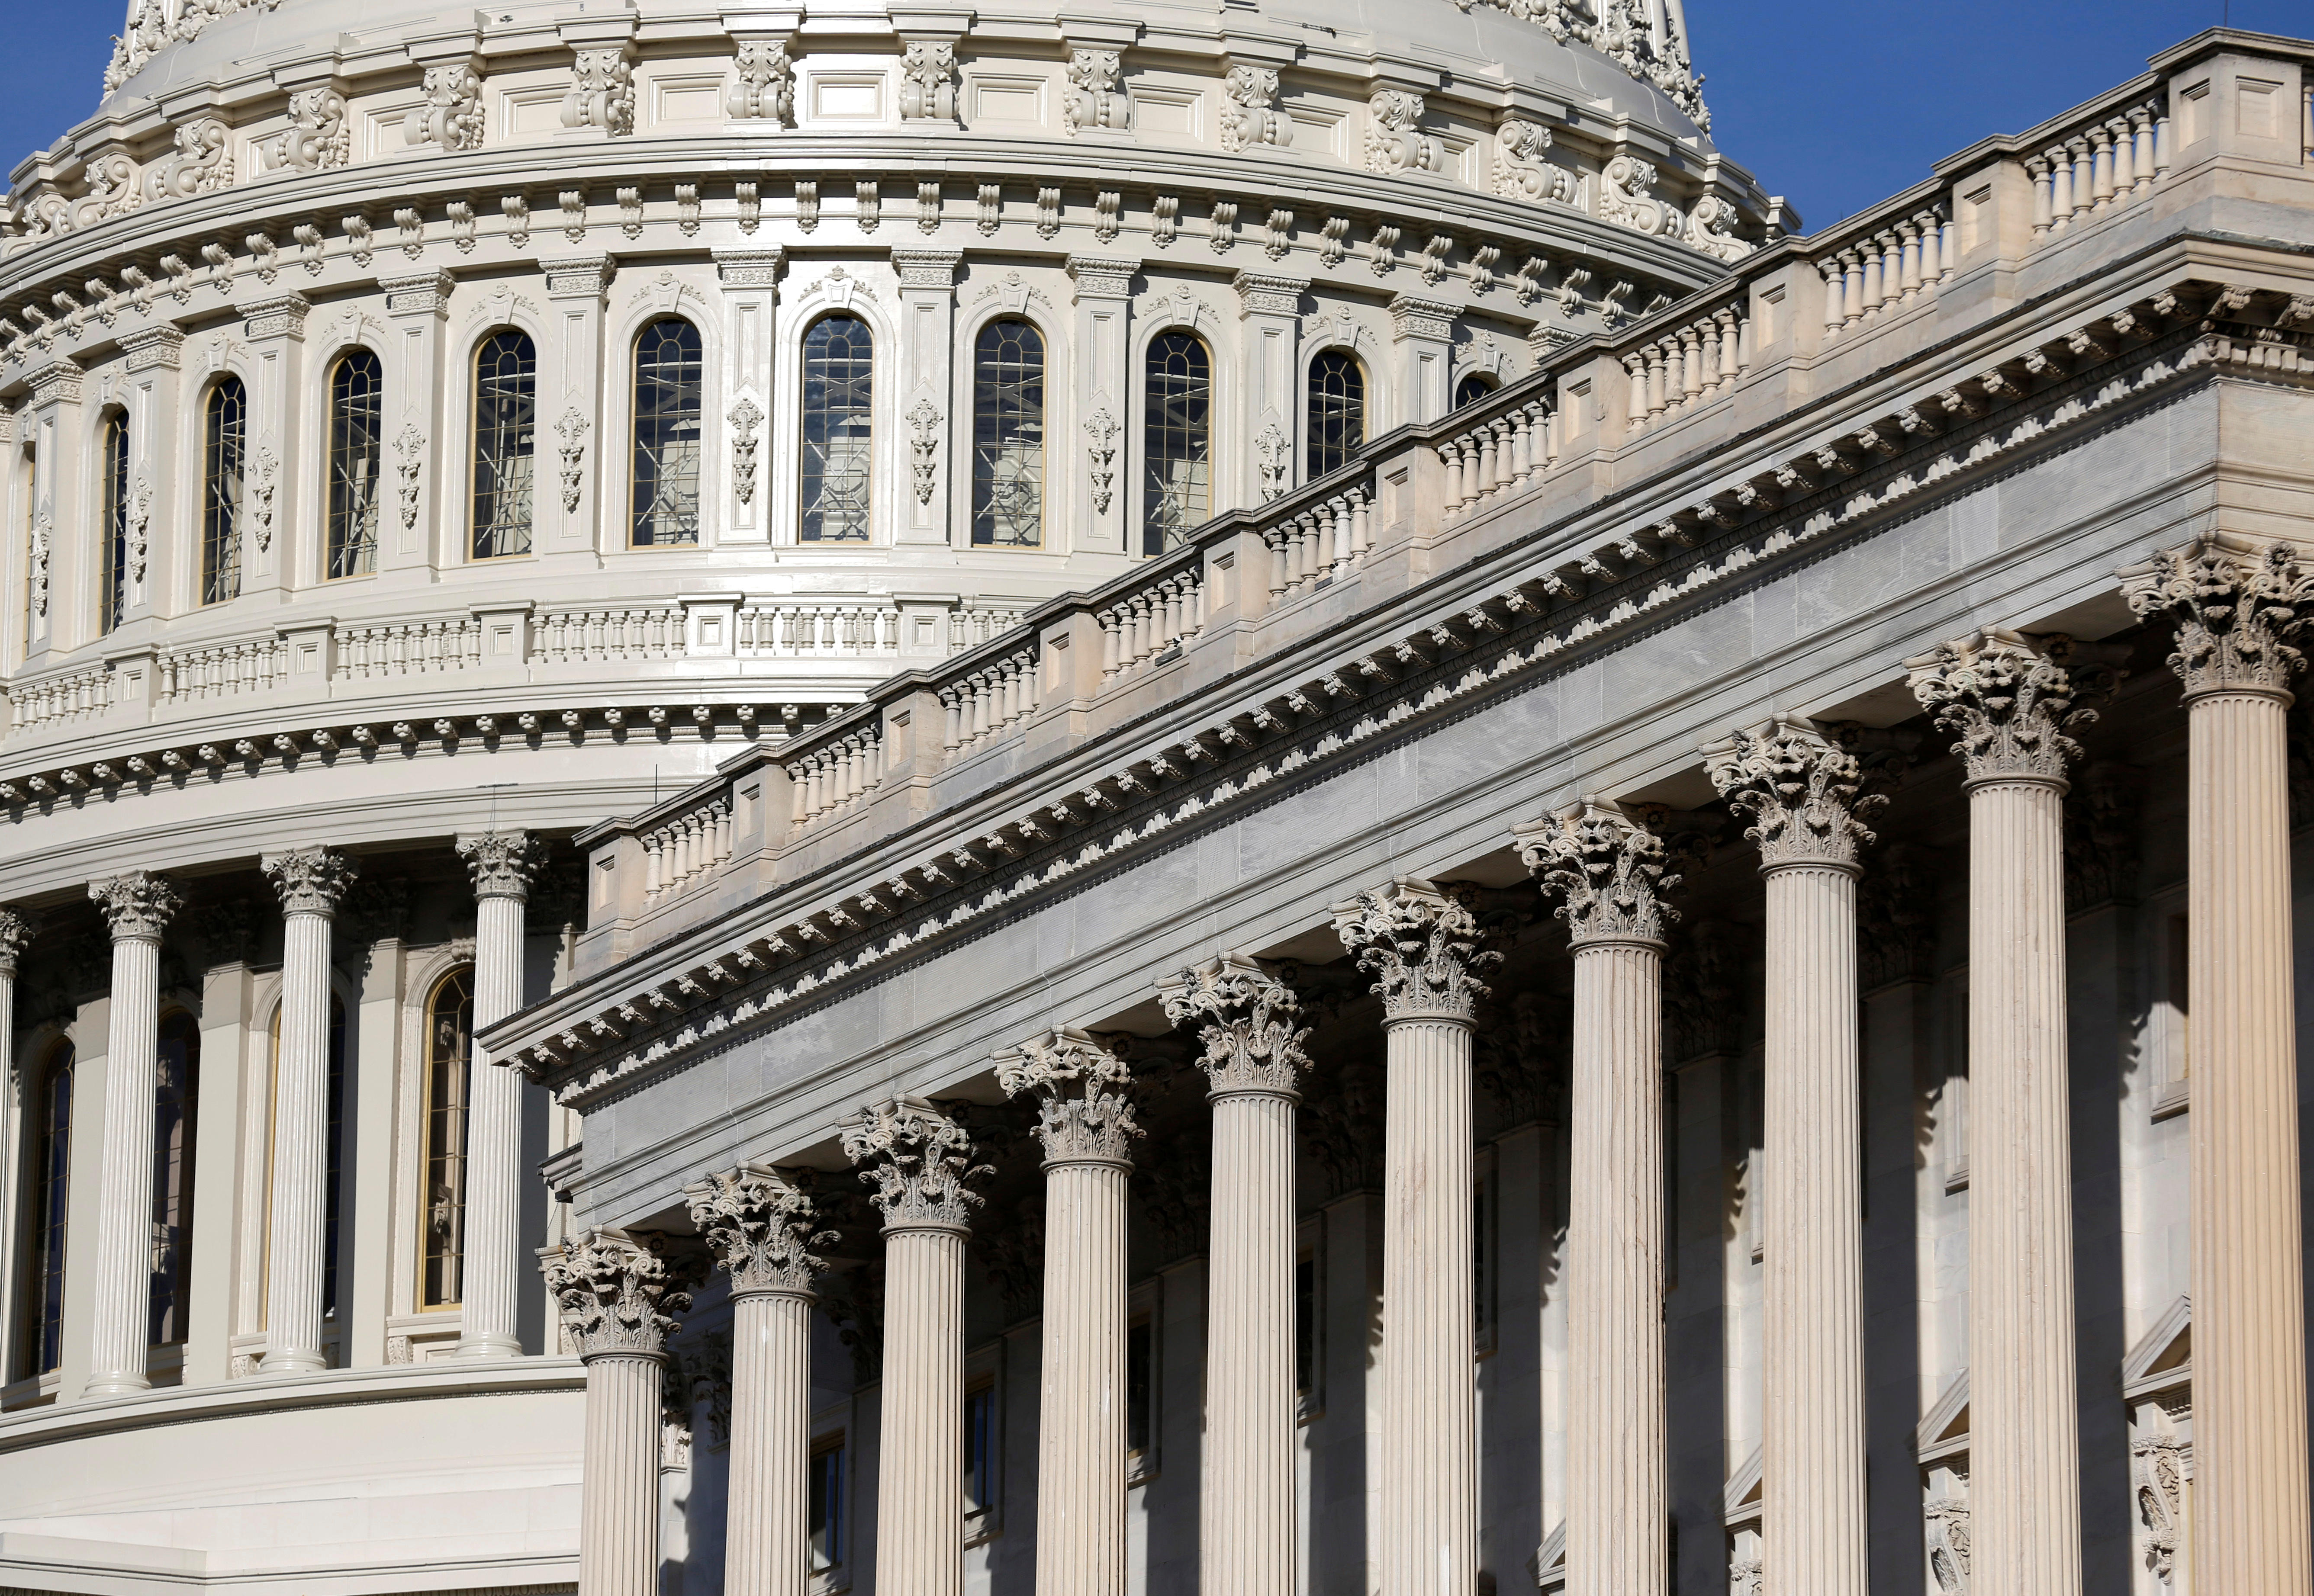 Debt ceiling deadline likely in early March, CBO warns - CBS News